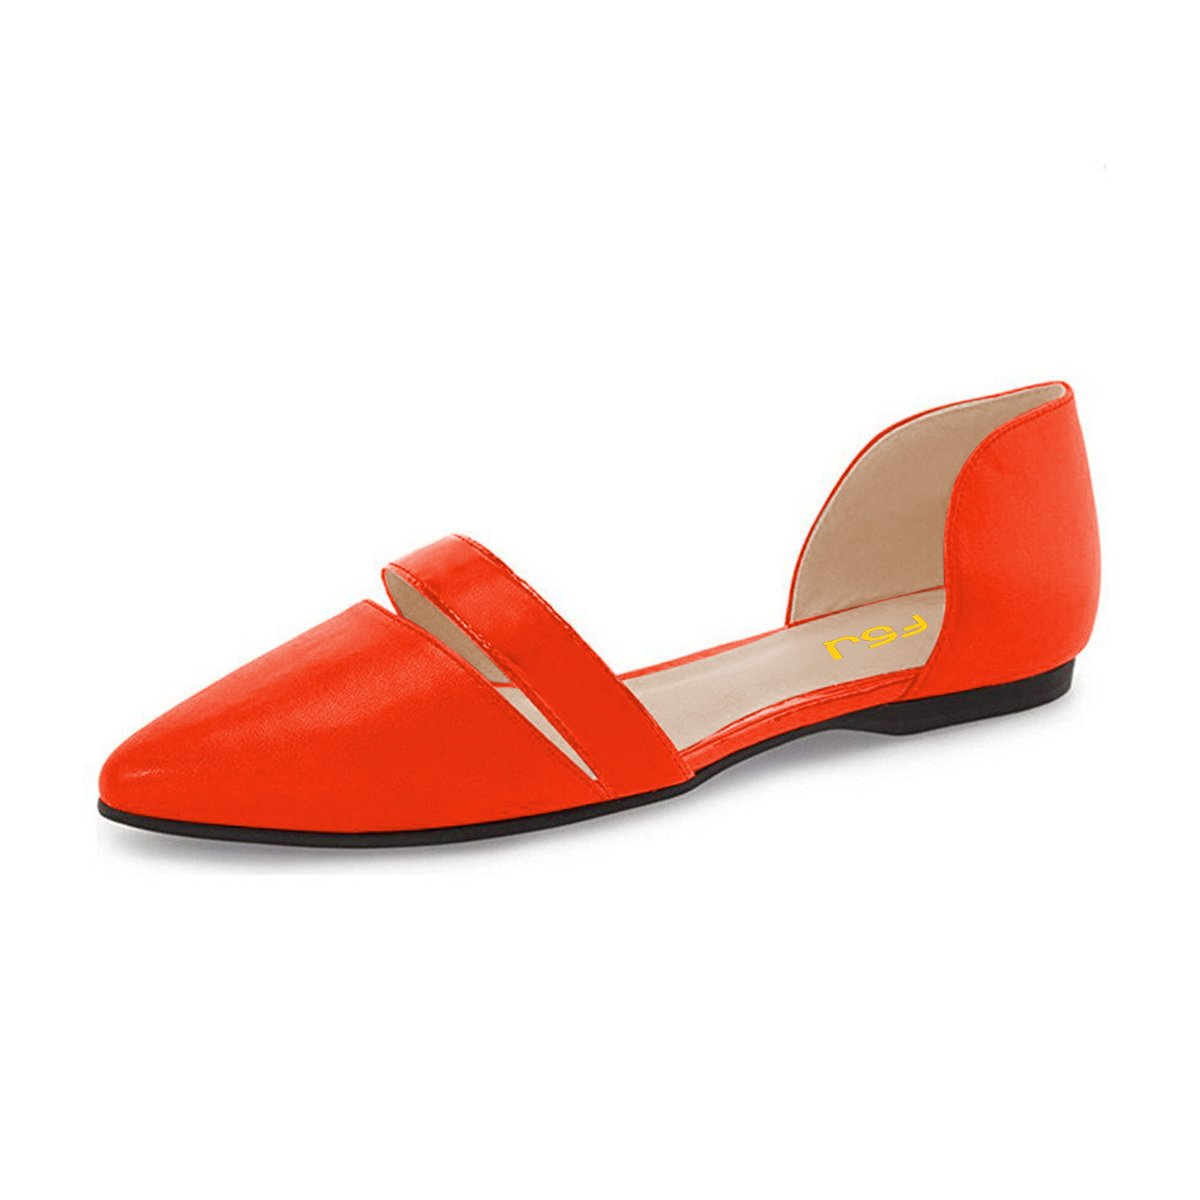 FSJ Women Cute D'Orsay Ballet Flats for Comfort Pointed Toe Low Heels Dress Shoes Size 4-15 US B06Y4PL2PT 4 B(M) US|Orange